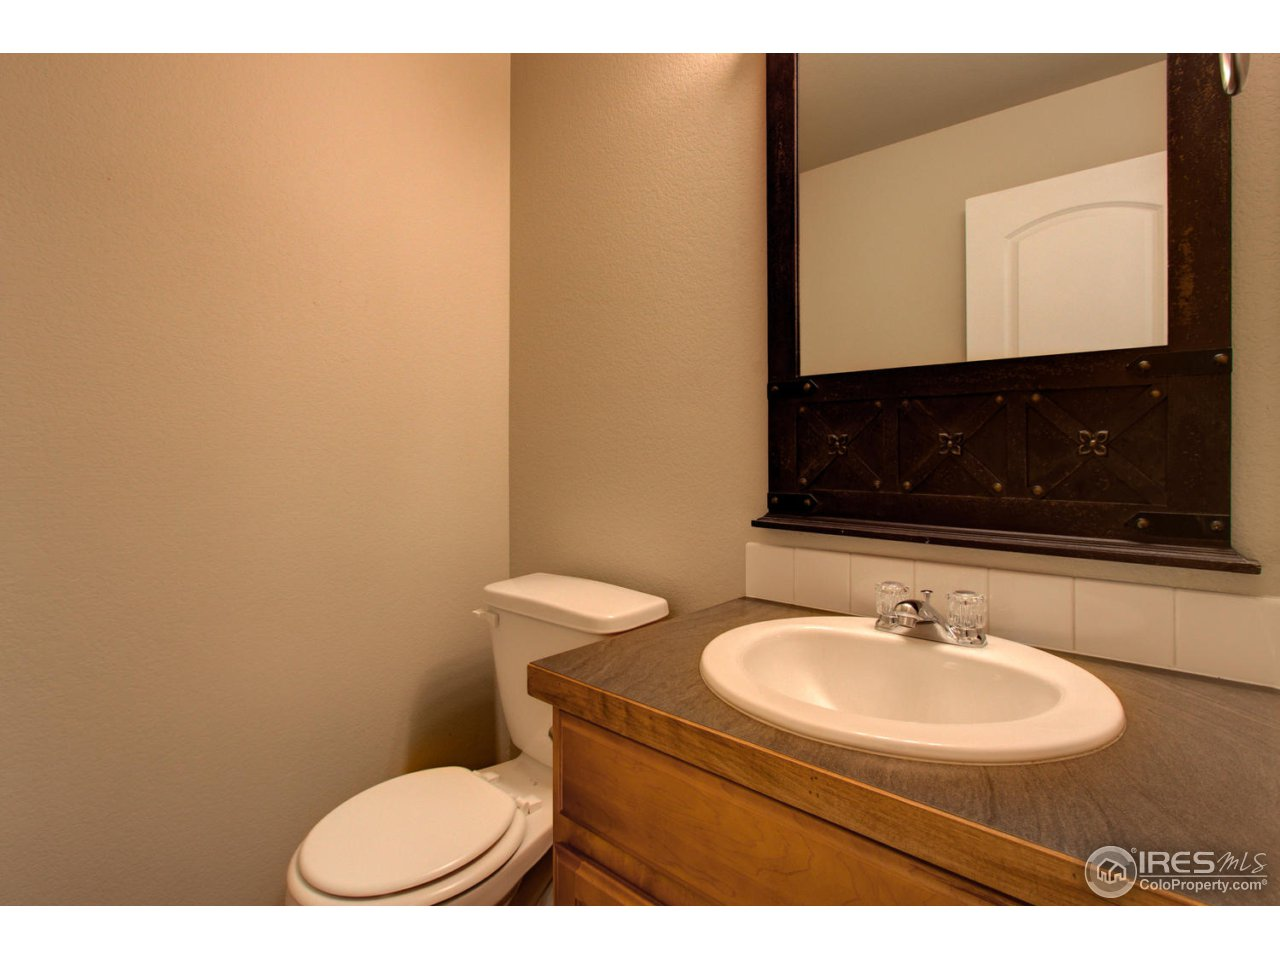 1/2 bath on lower level